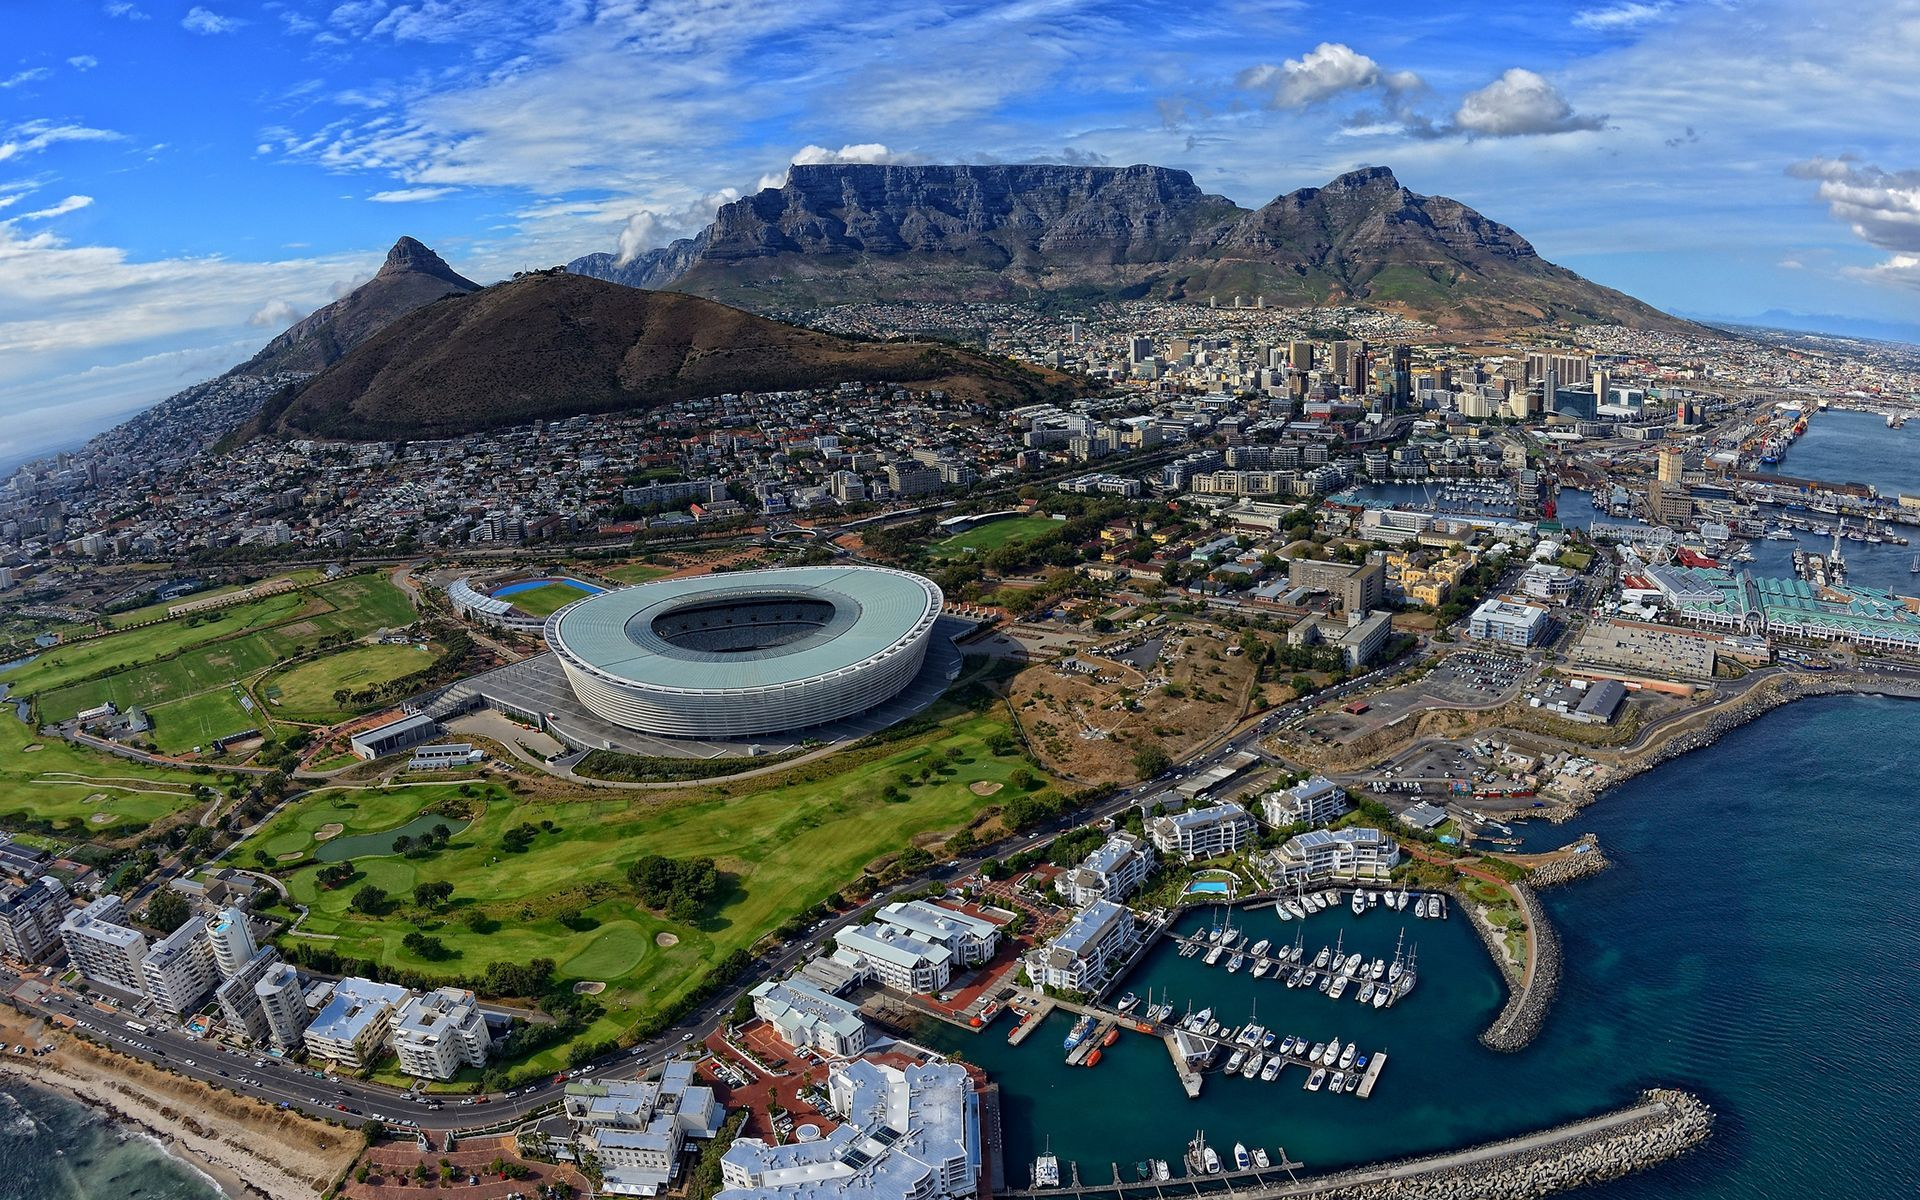 Cape Town South Africa wallpaper 17856 1920x1200